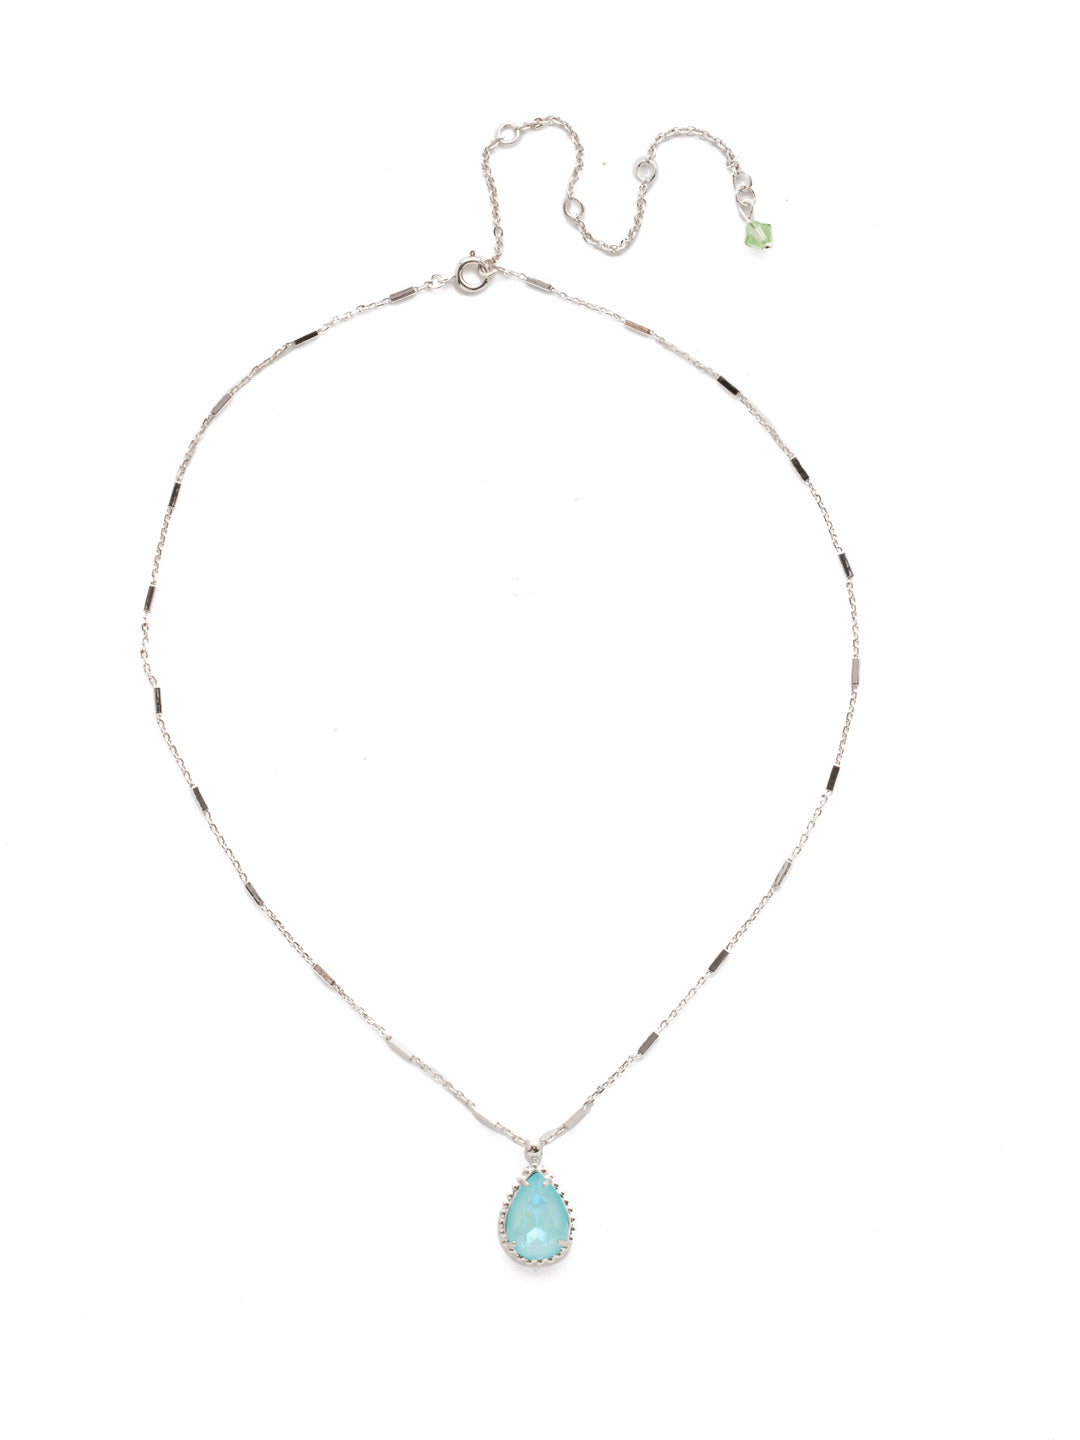 Simply Adorned Pendant Necklace - NDN12RHSSU